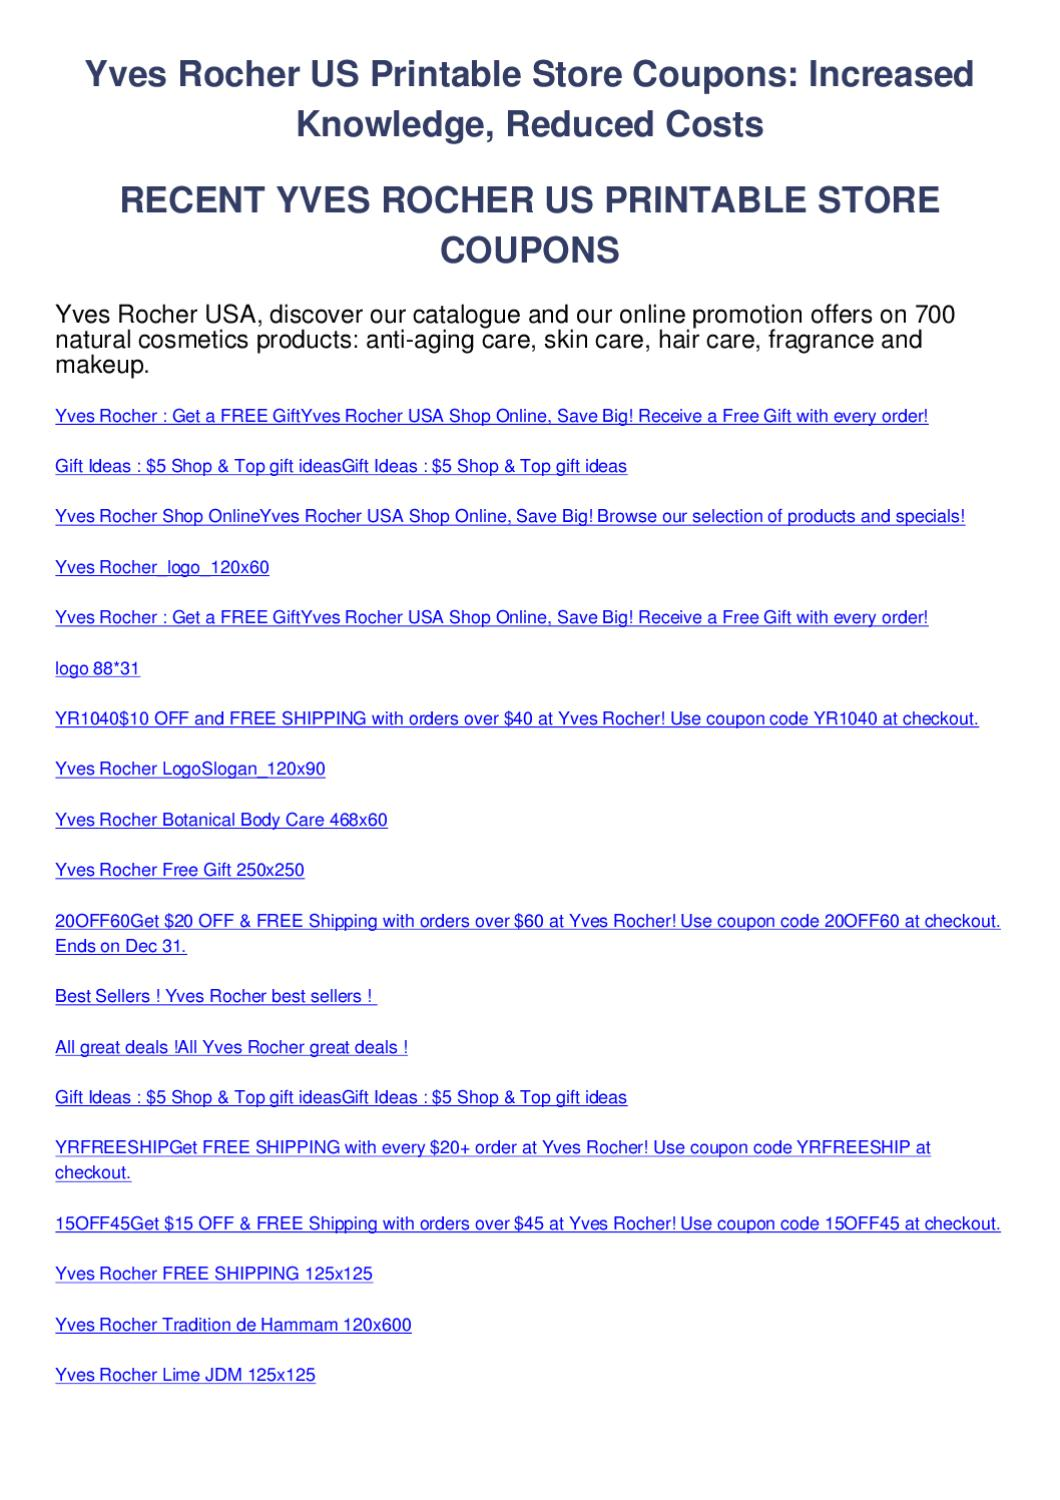 Yves Rocher Us Printable Store Coupons By Salem Horn Issuu